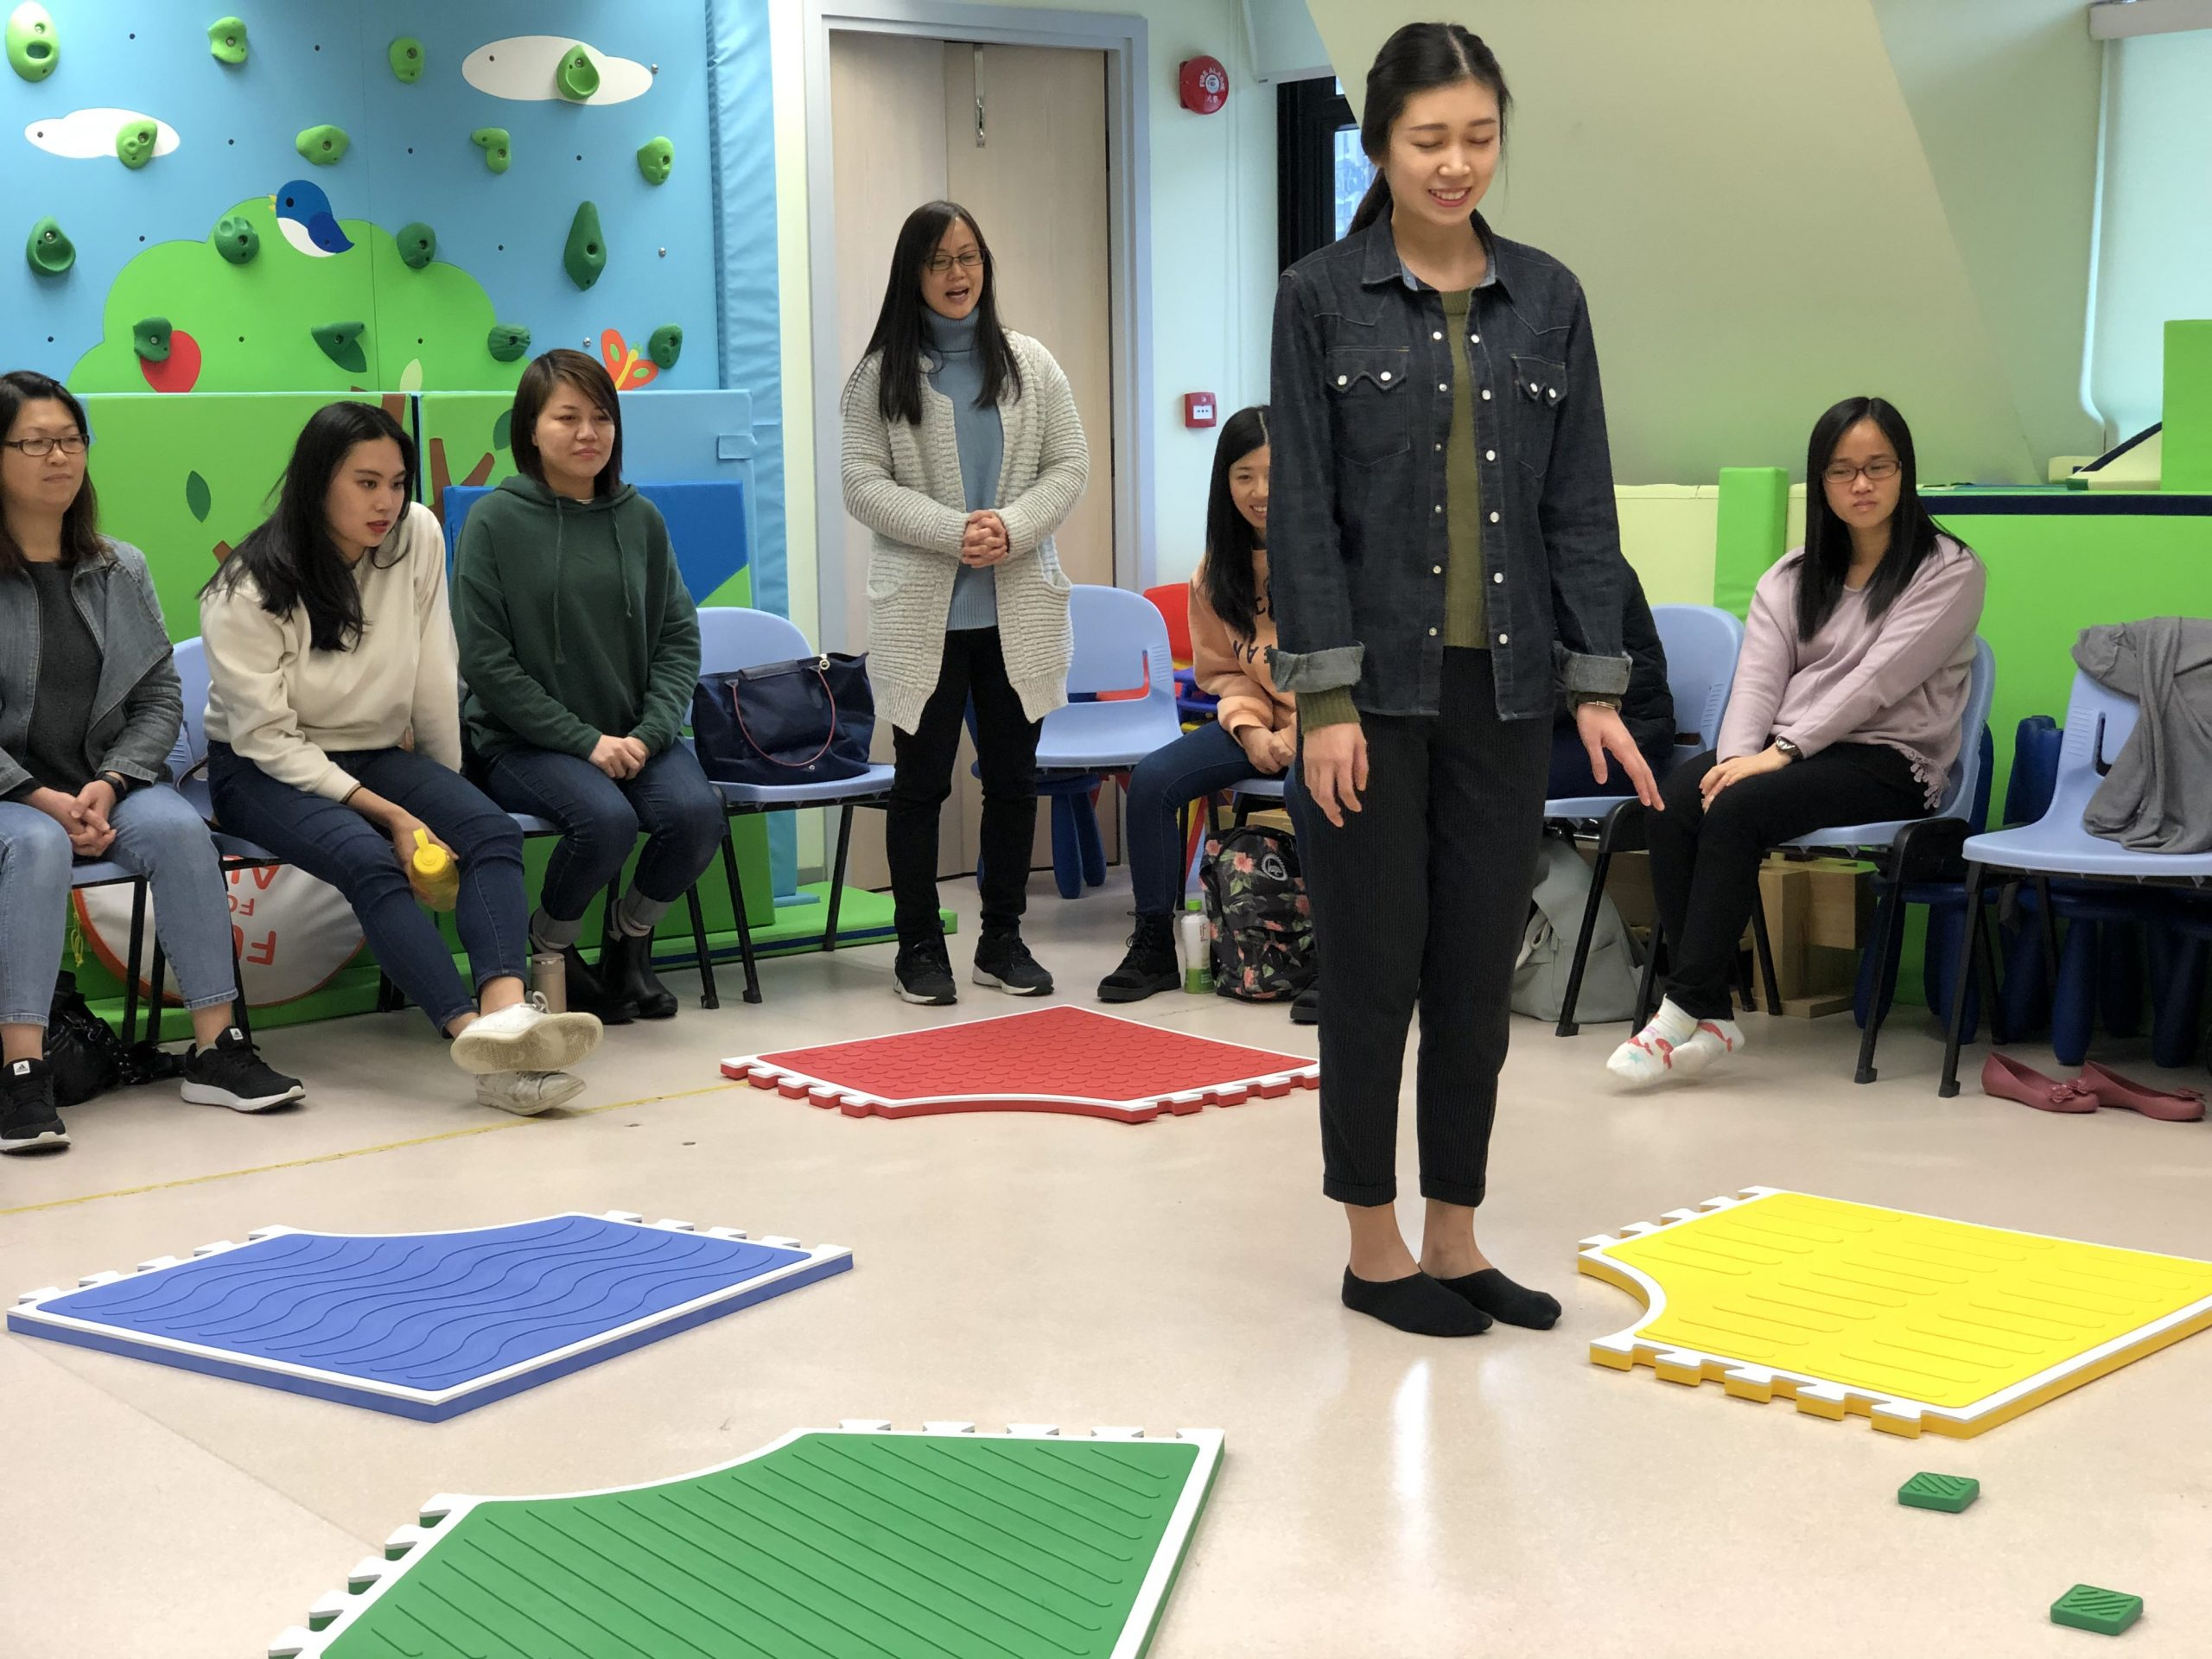 Tung wah teachers receive reach and match training